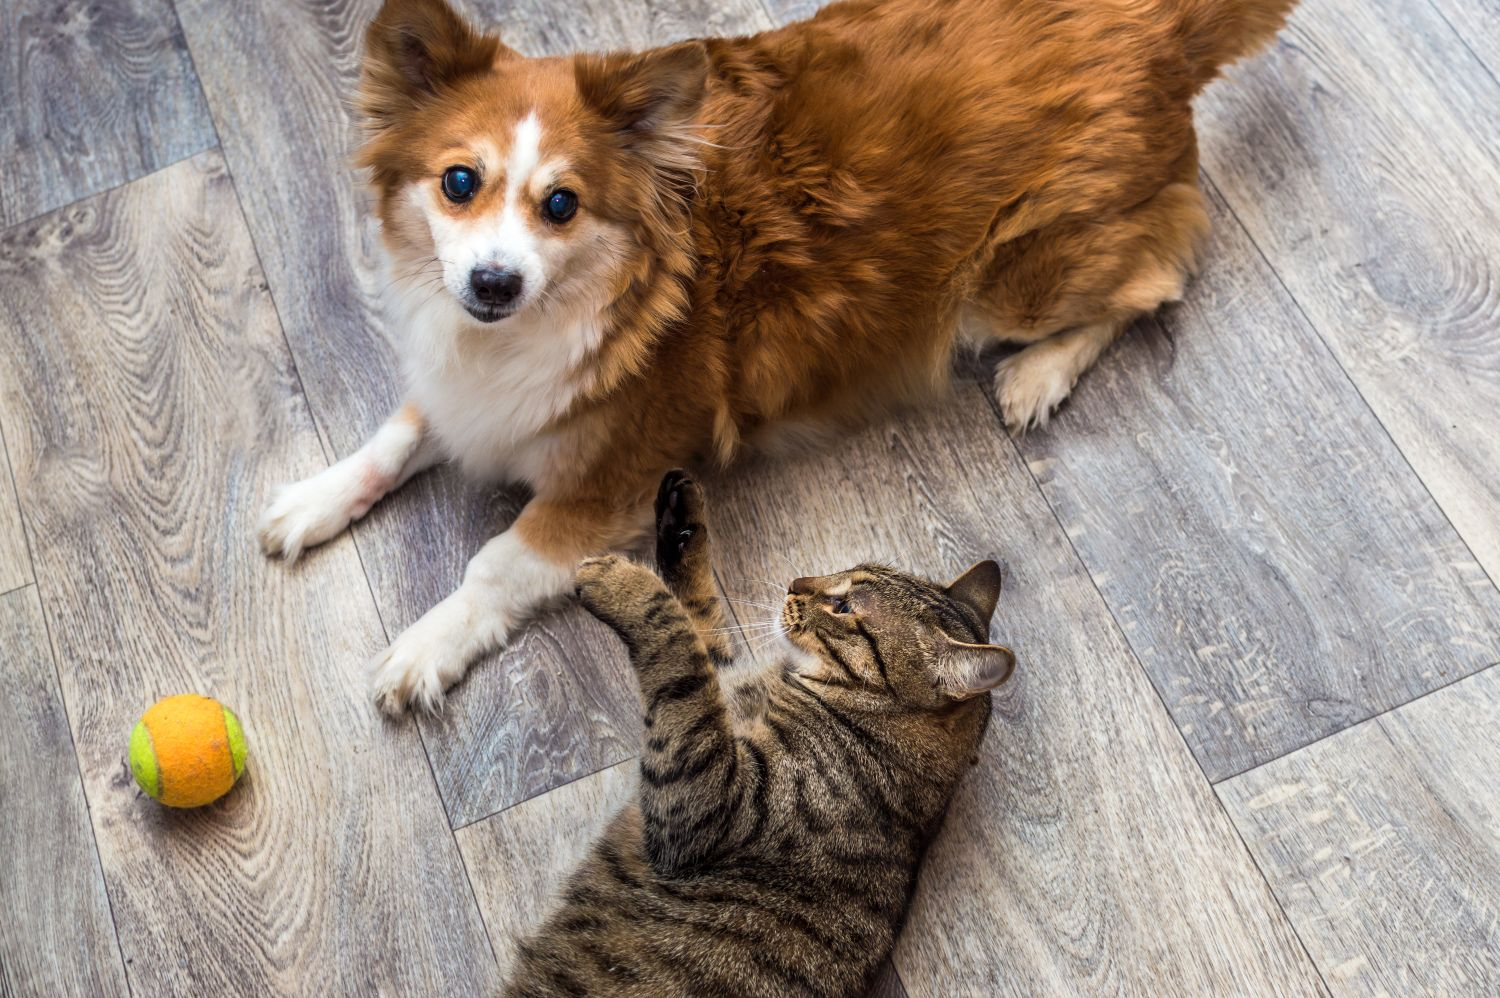 Dog and cat playing with ball.